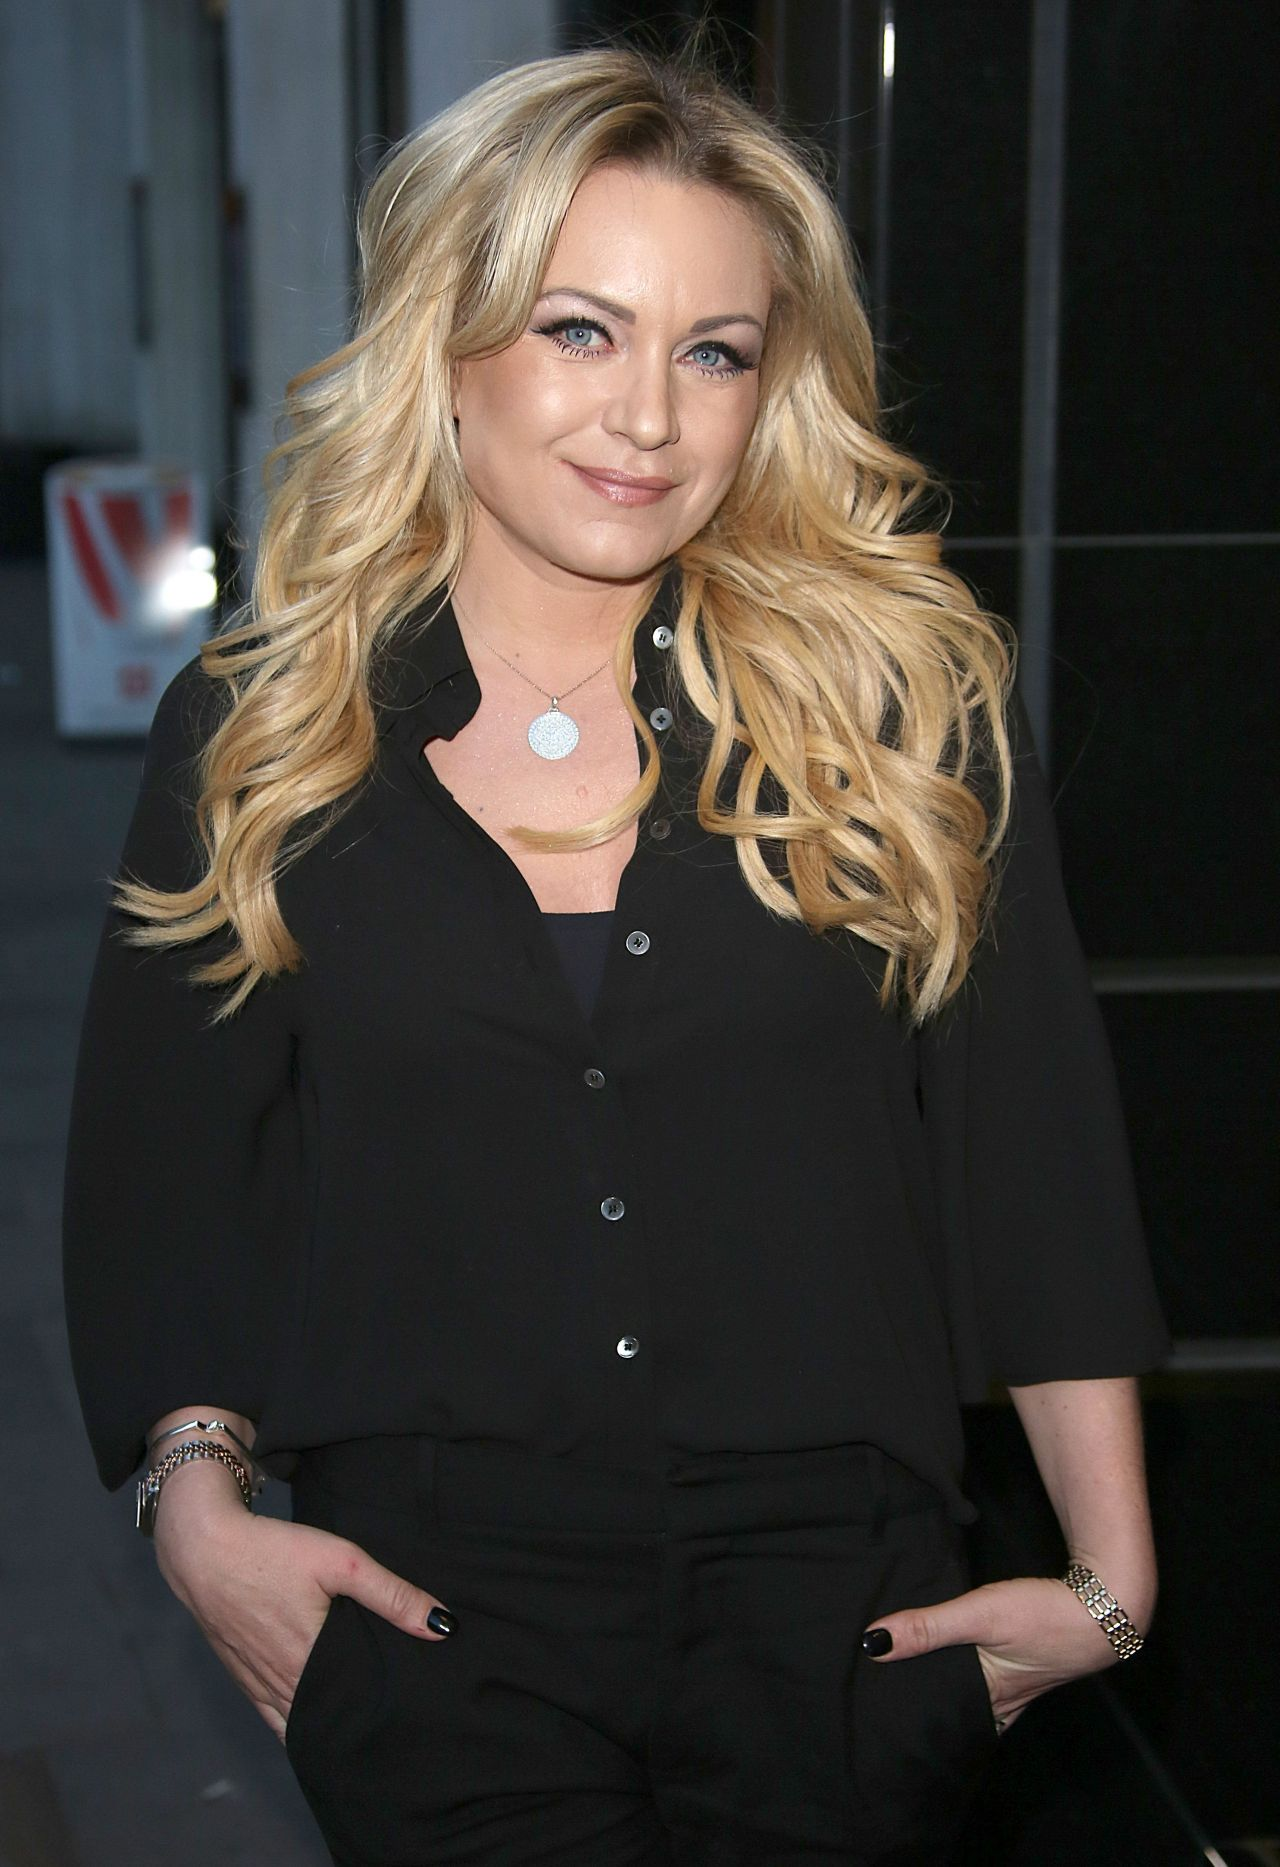 Rita Simons Latest Photos Celebmafia